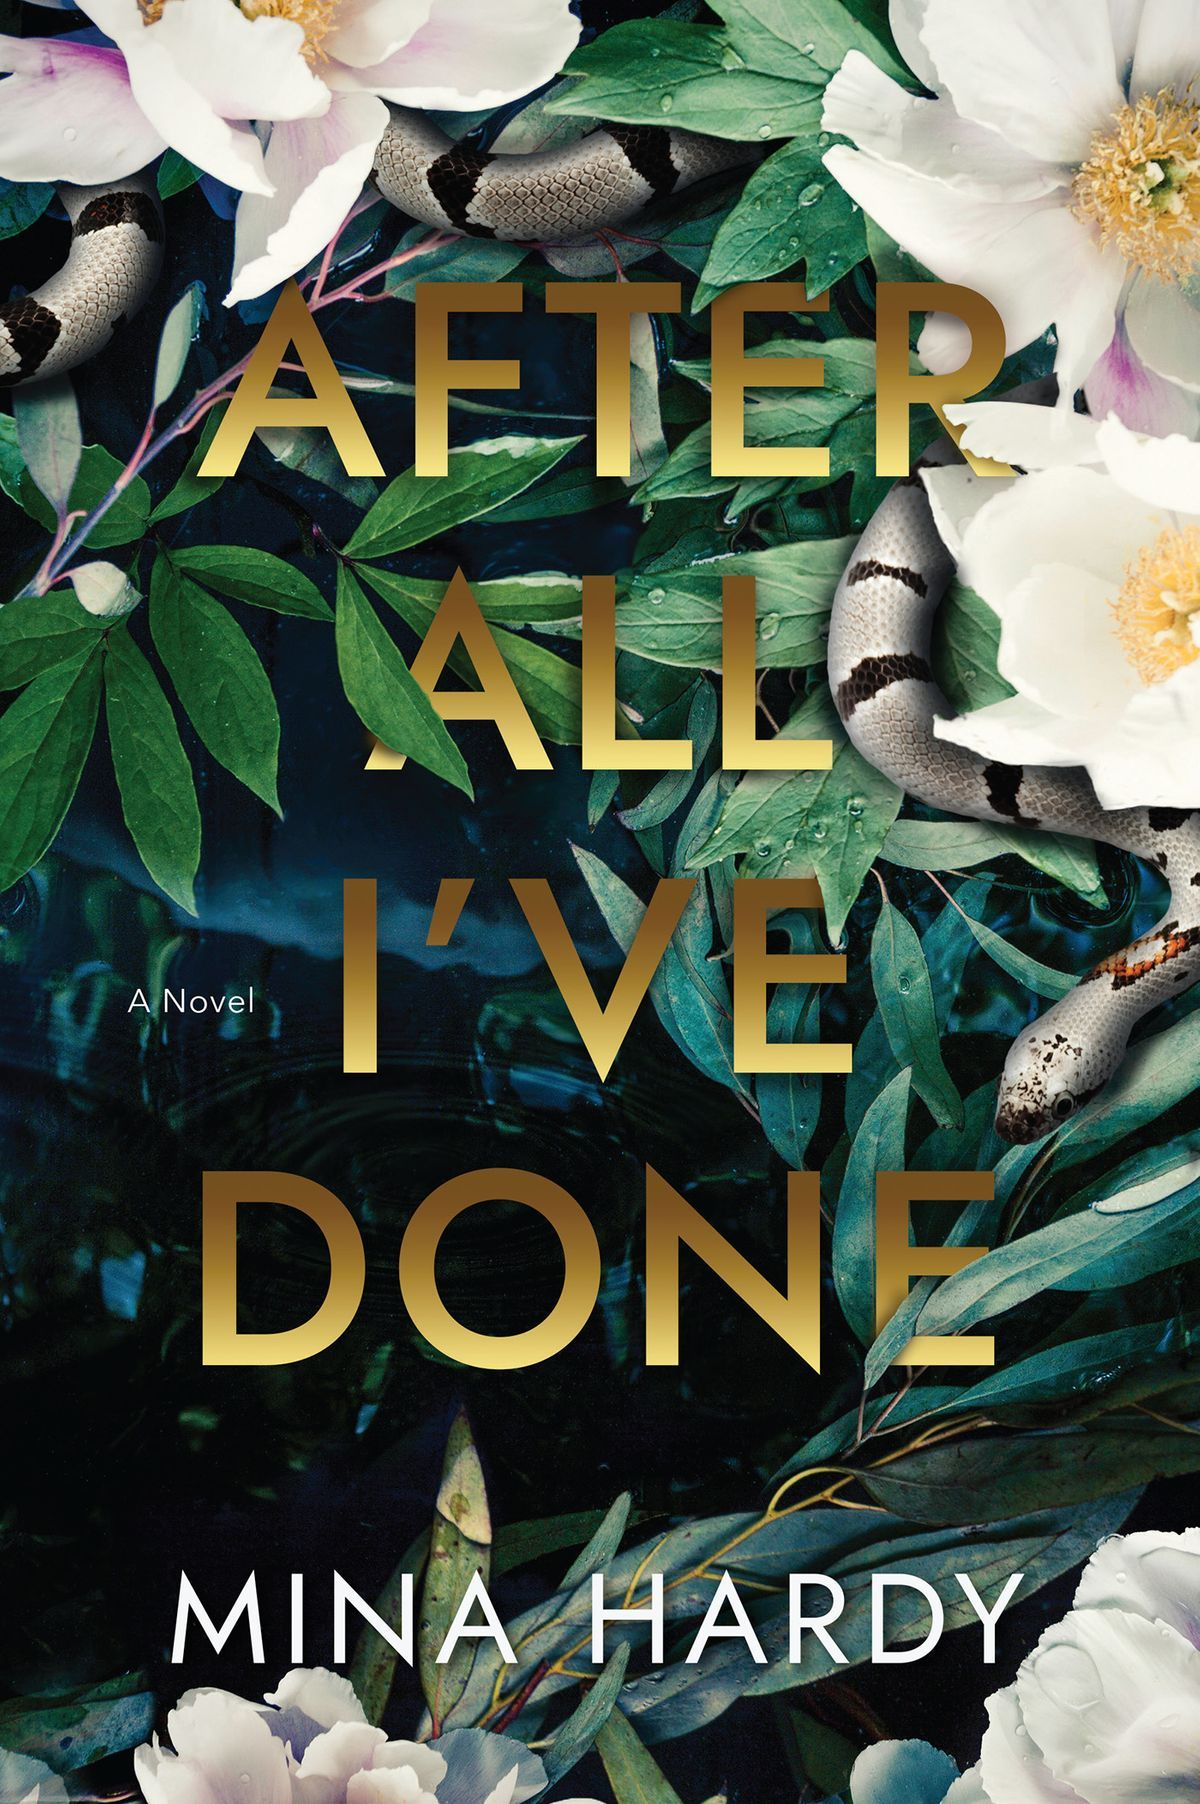 Pdf After All I Ve Done By Mina Hardy In 2020 Psychological Suspense Book Review Blogs Suspense Thriller